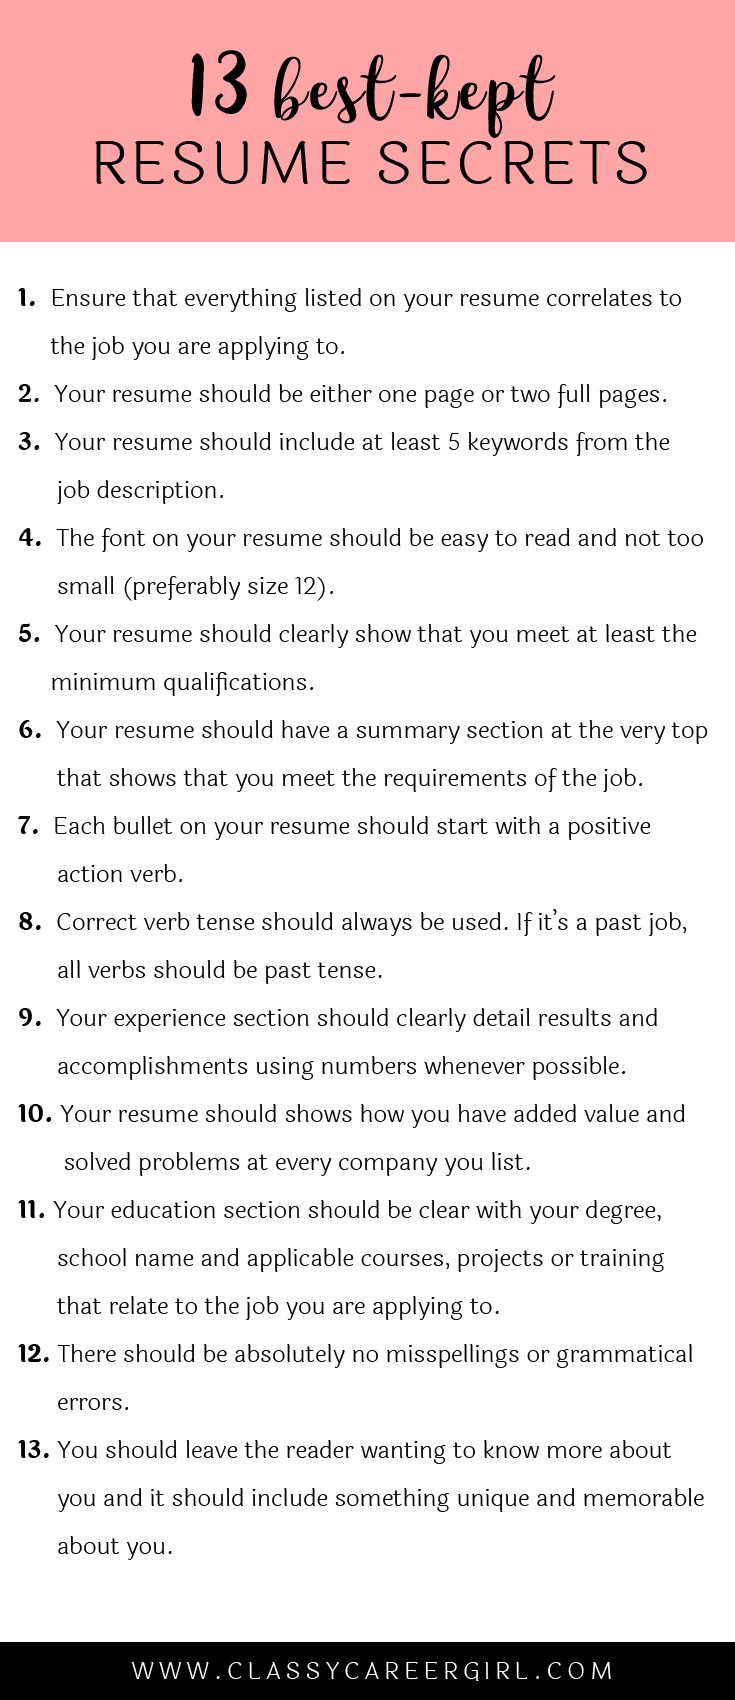 Opposenewapstandardsus  Ravishing  Ideas About Resume On Pinterest  Cv Format Resume Cv And  With Extraordinary Some Hiring Managers Will Toss Your Resume Out If You Dont Know These  With Divine Linux Admin Resume Also Sales Representative Resume Examples In Addition Hybrid Resume Template Word And Resume Examples Engineering As Well As Architect Resume Sample Additionally Creating A Cover Letter For Resume From Pinterestcom With Opposenewapstandardsus  Extraordinary  Ideas About Resume On Pinterest  Cv Format Resume Cv And  With Divine Some Hiring Managers Will Toss Your Resume Out If You Dont Know These  And Ravishing Linux Admin Resume Also Sales Representative Resume Examples In Addition Hybrid Resume Template Word From Pinterestcom